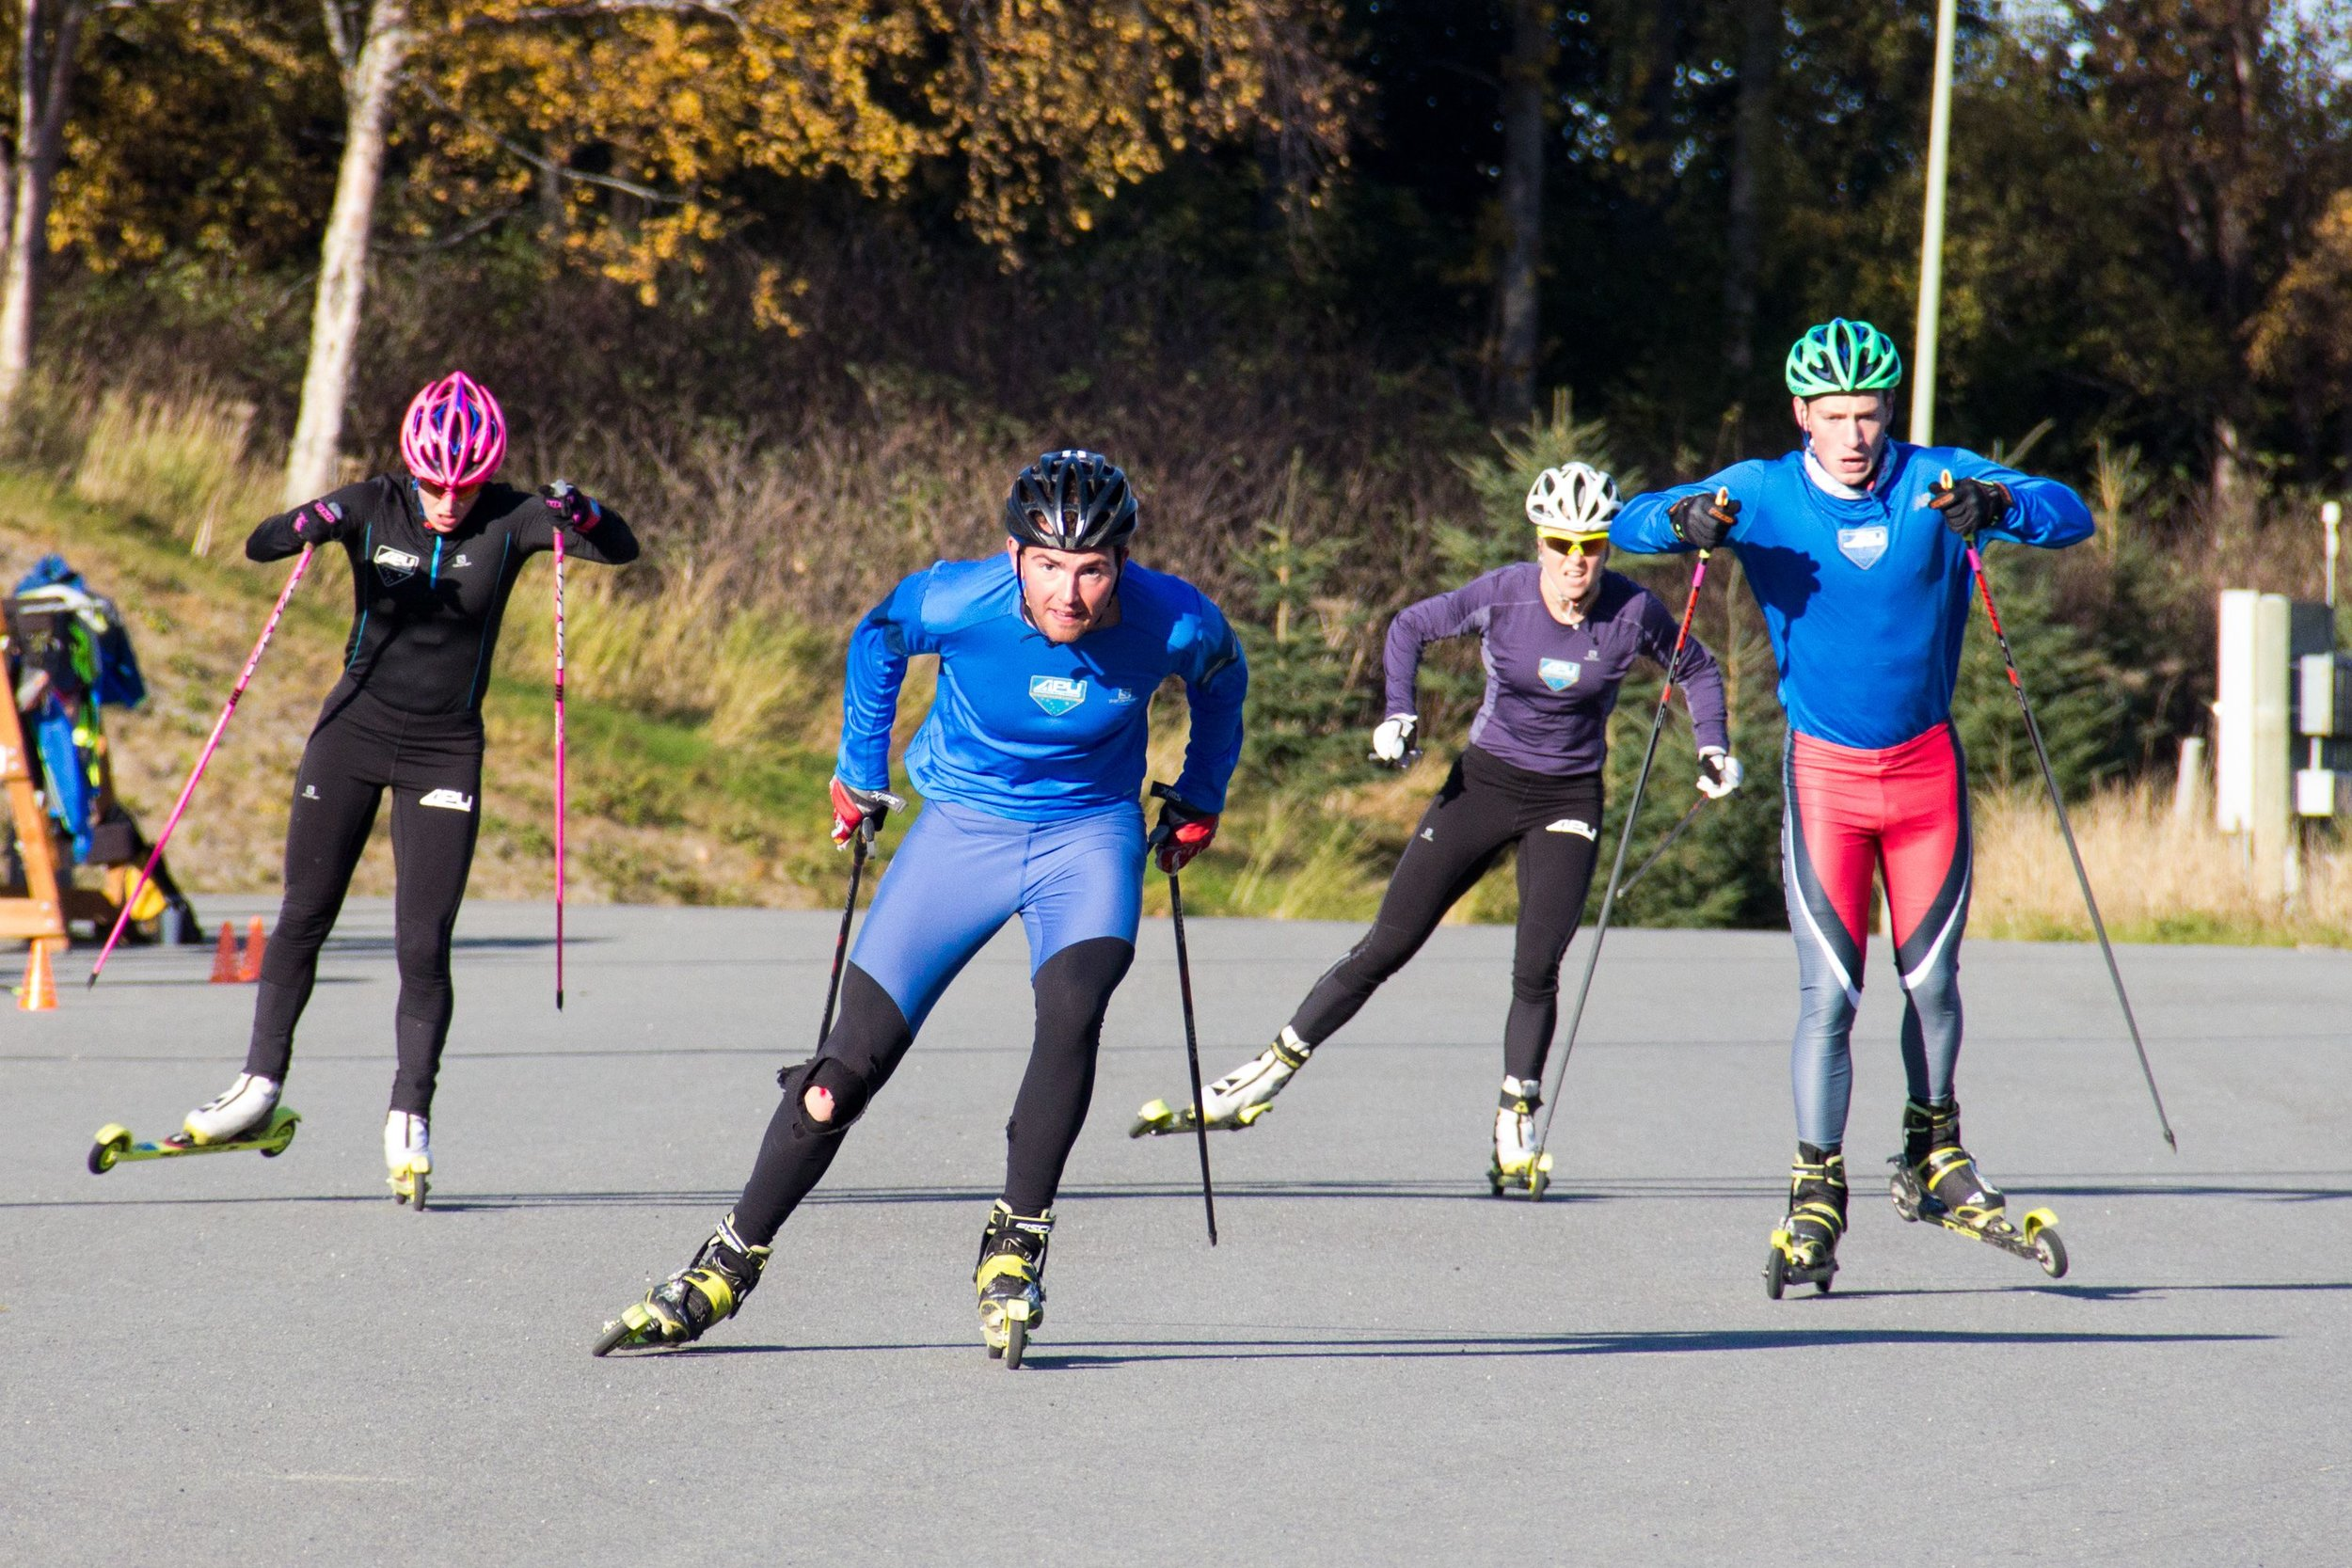 Chasing the boys during a sprint TT. Faster skis makes for a fun challenge for both of us! (Eric Packer photo)